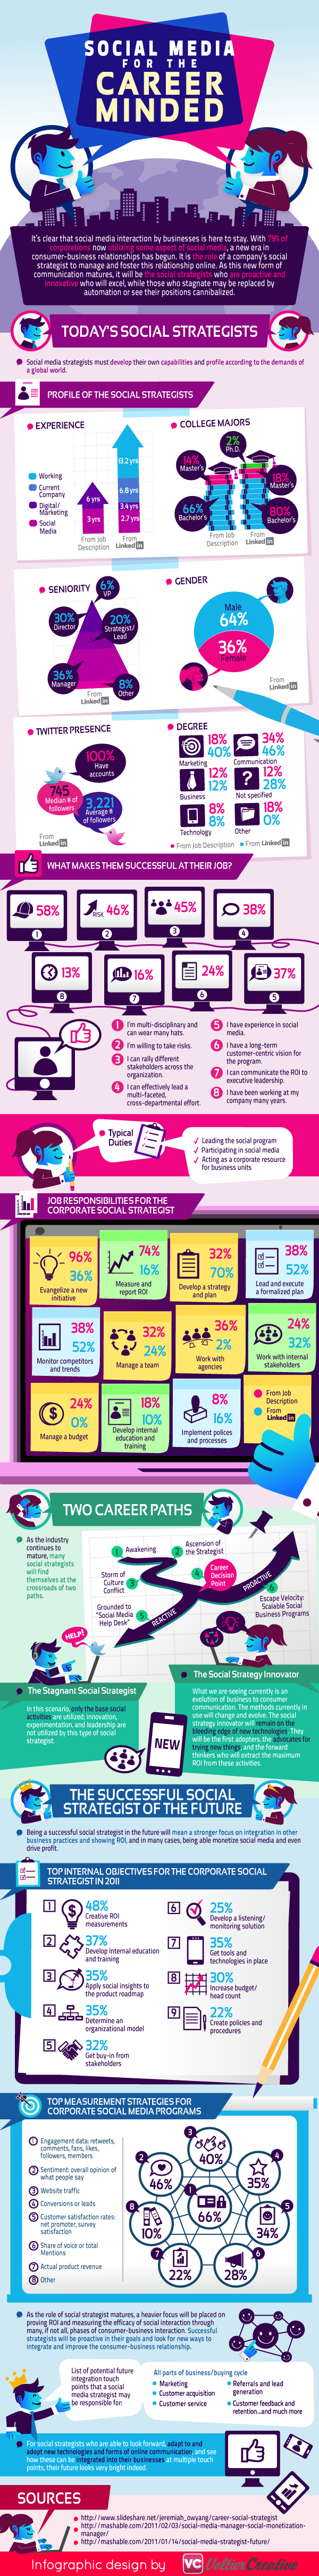 Social Media Strategist Statistics Infographic